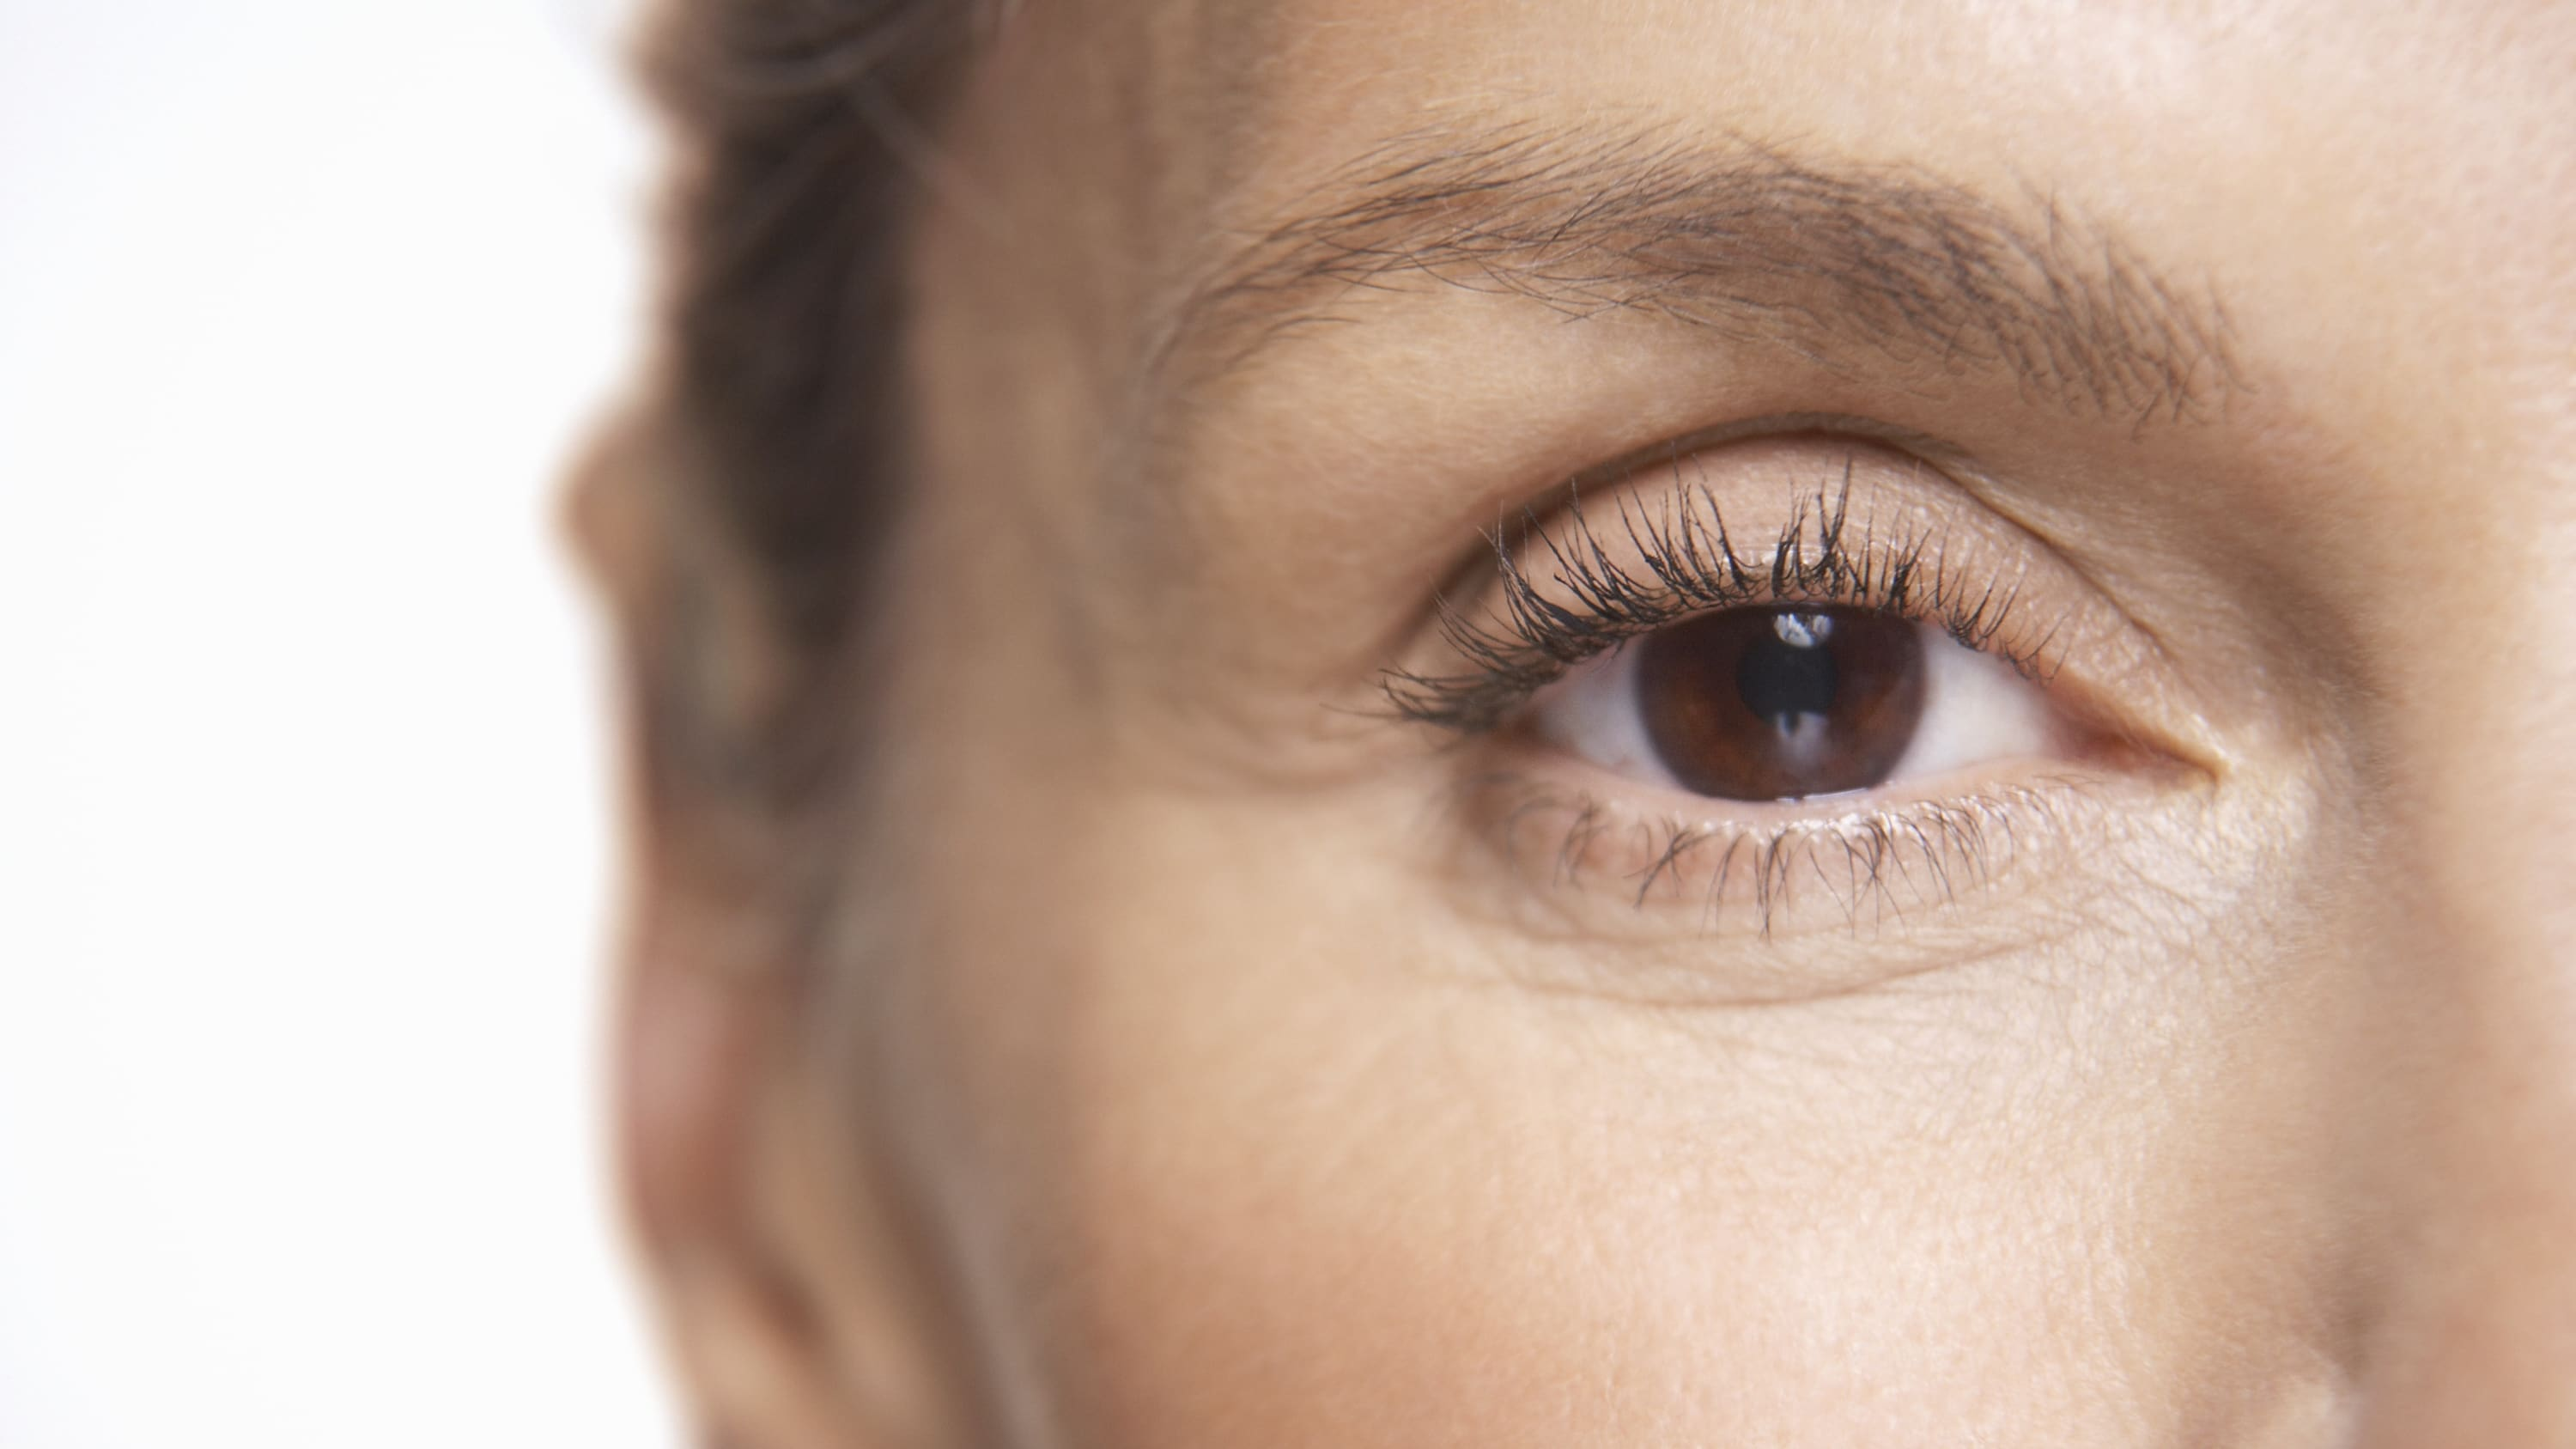 A person who sees double vision may have strabismus.